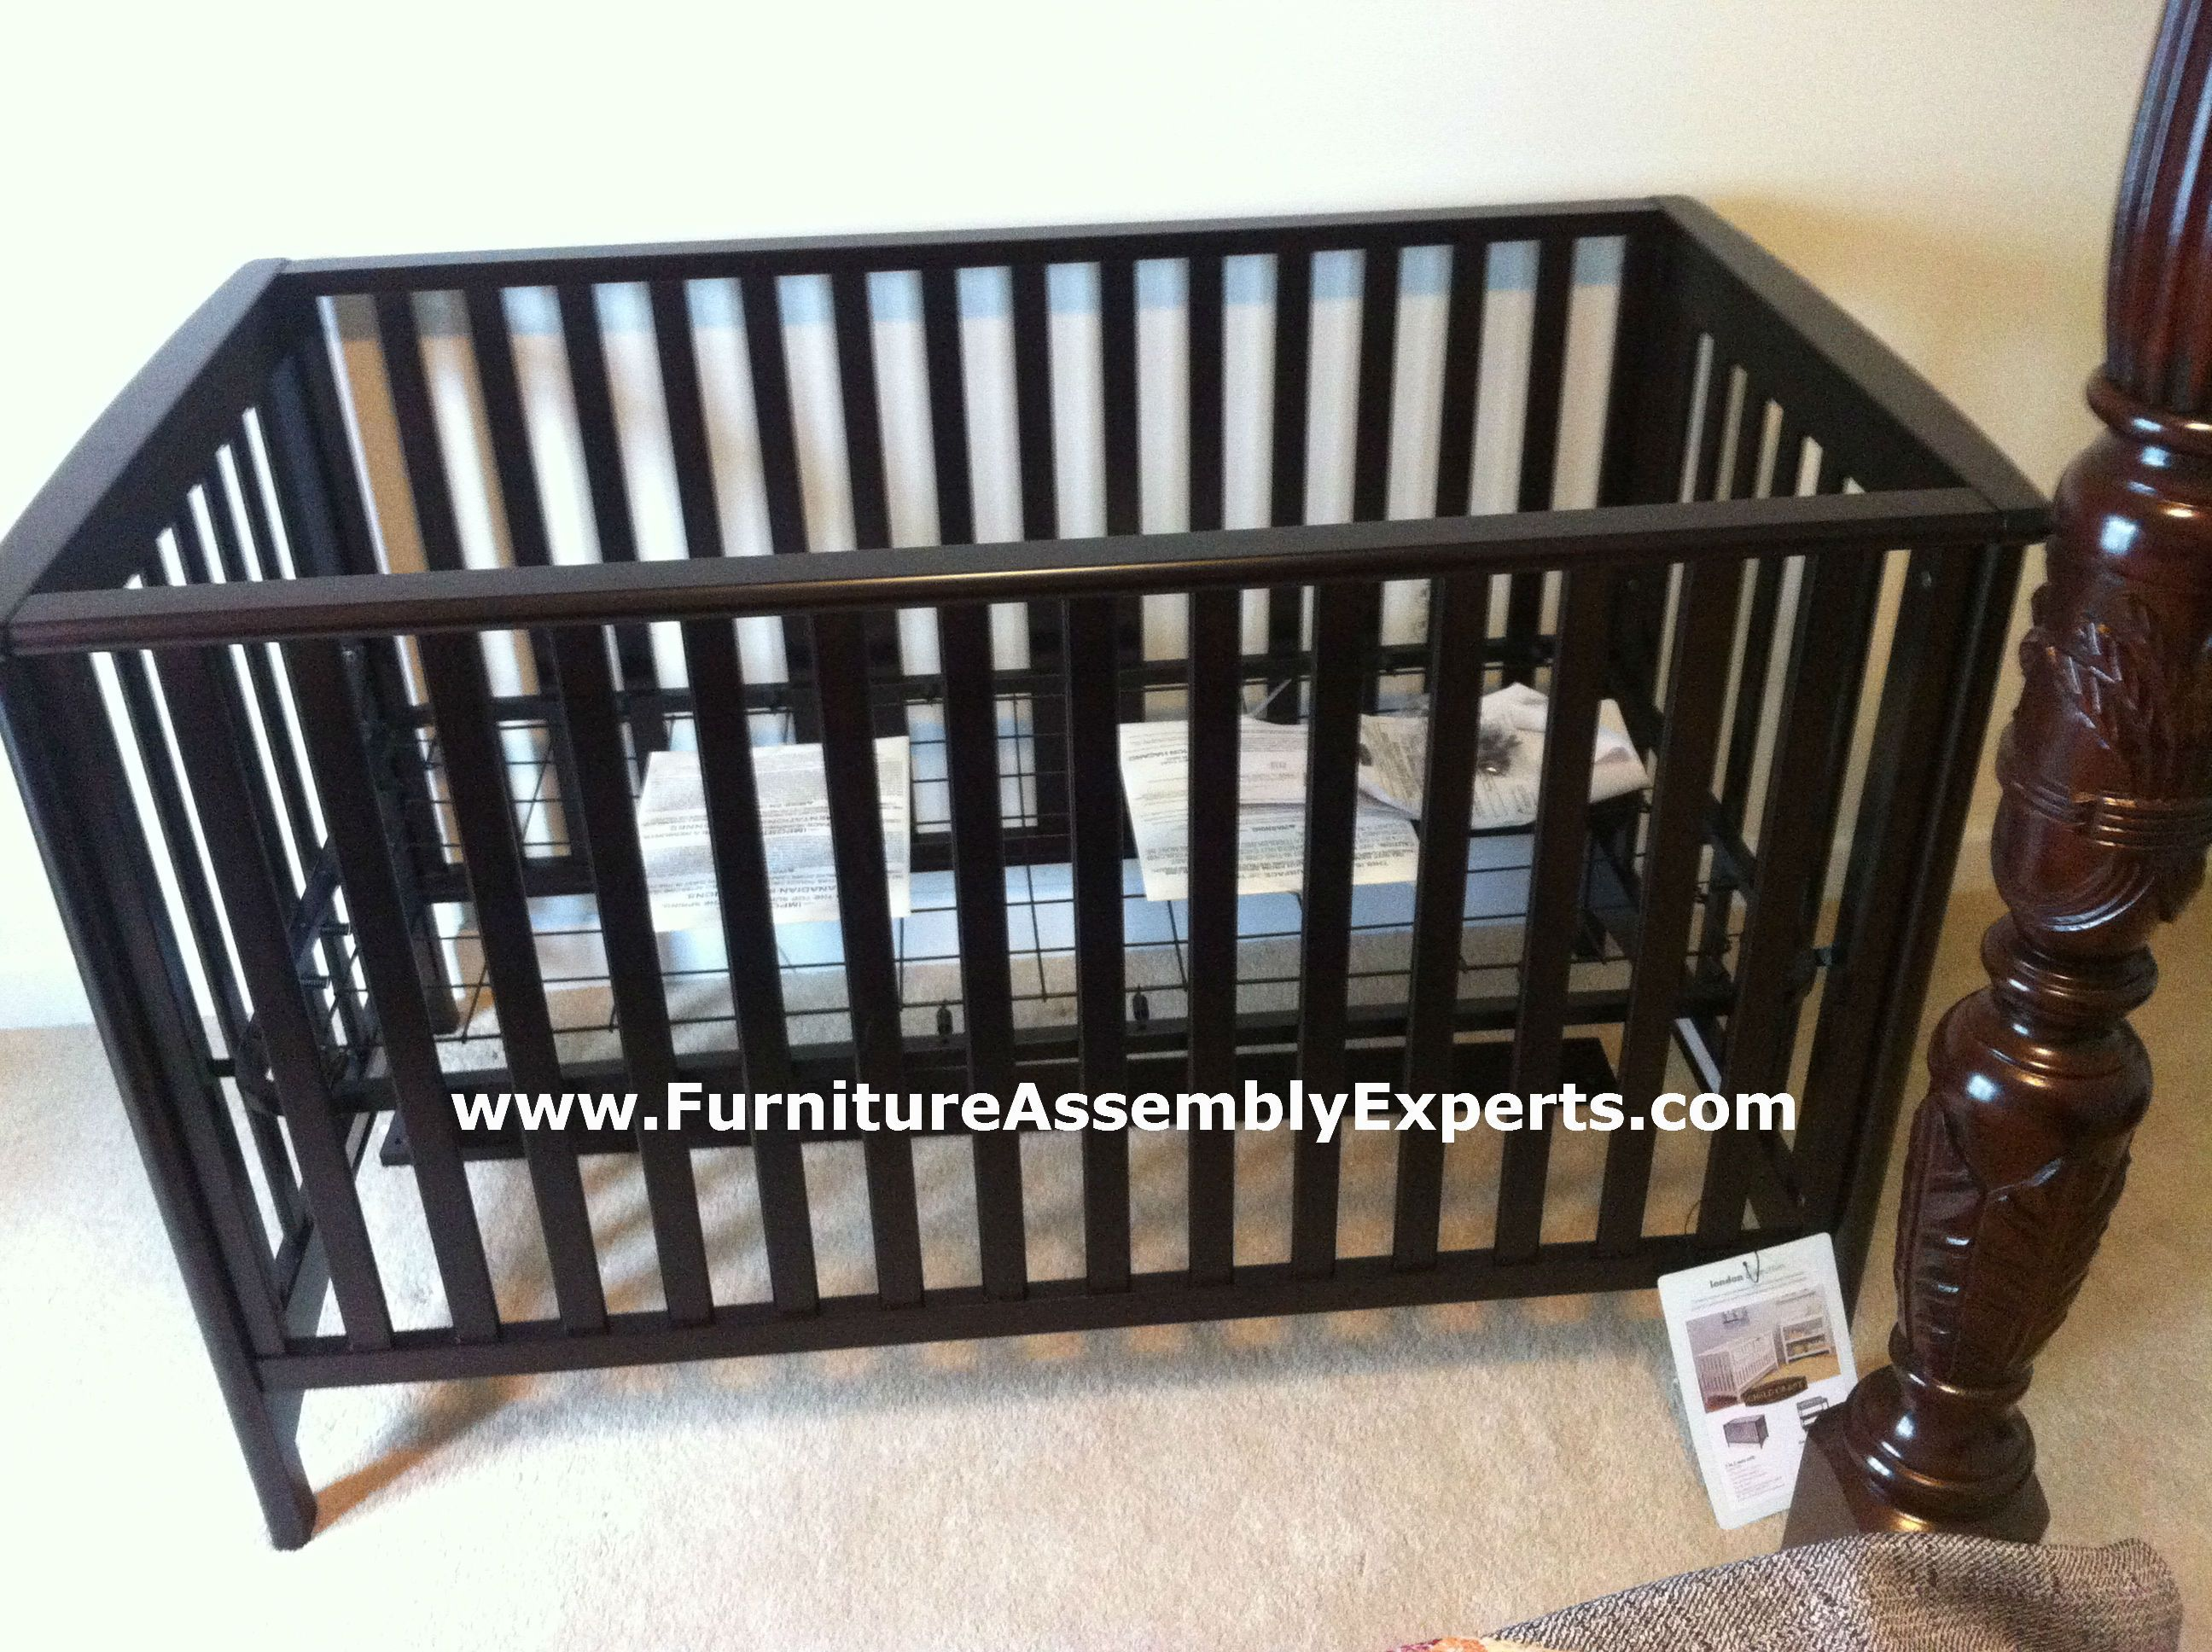 Land Of Nod Child Craft Baby Crib Assembled In Rockville Md By Furniture Assembly Experts Llc Baby Cribs Furniture Assembly Crib Assembly